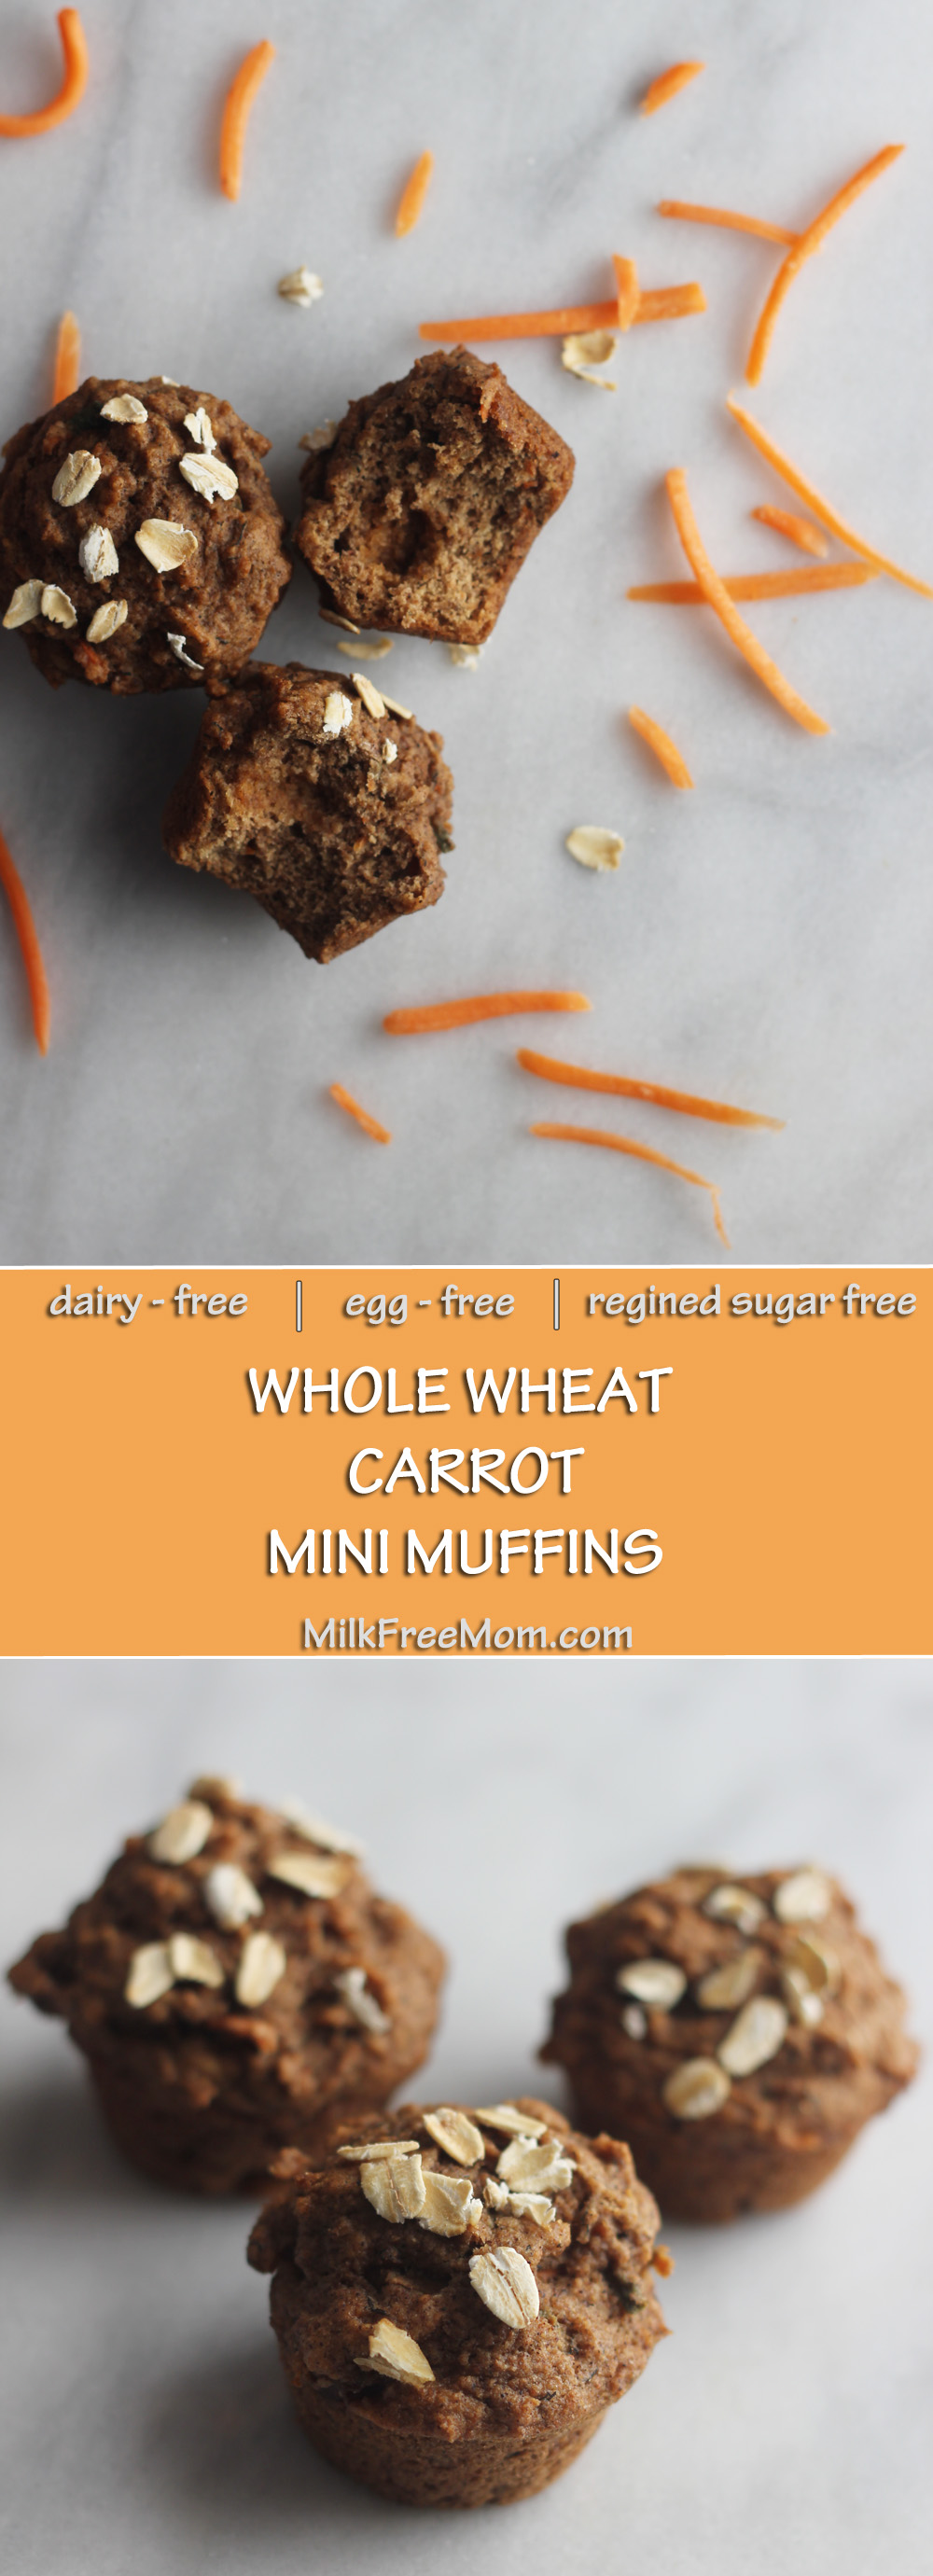 Carrot Mini Muffins Pinterest